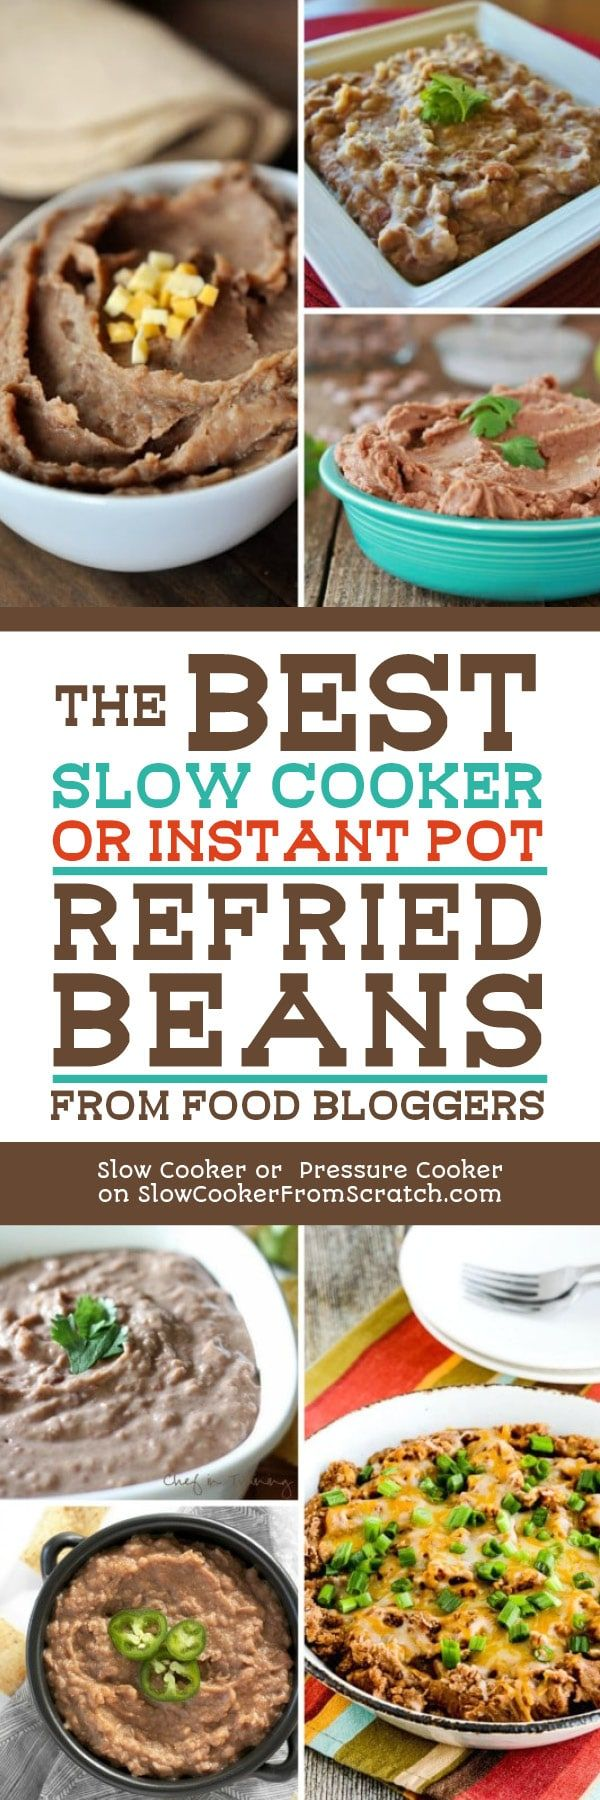 The best slow cooker or instant pot refried beans from food bloggers the best slow cooker or instant pot refried beans from food bloggers best holiday recipes pinterest homemade refried beans instant pot and cooker forumfinder Image collections